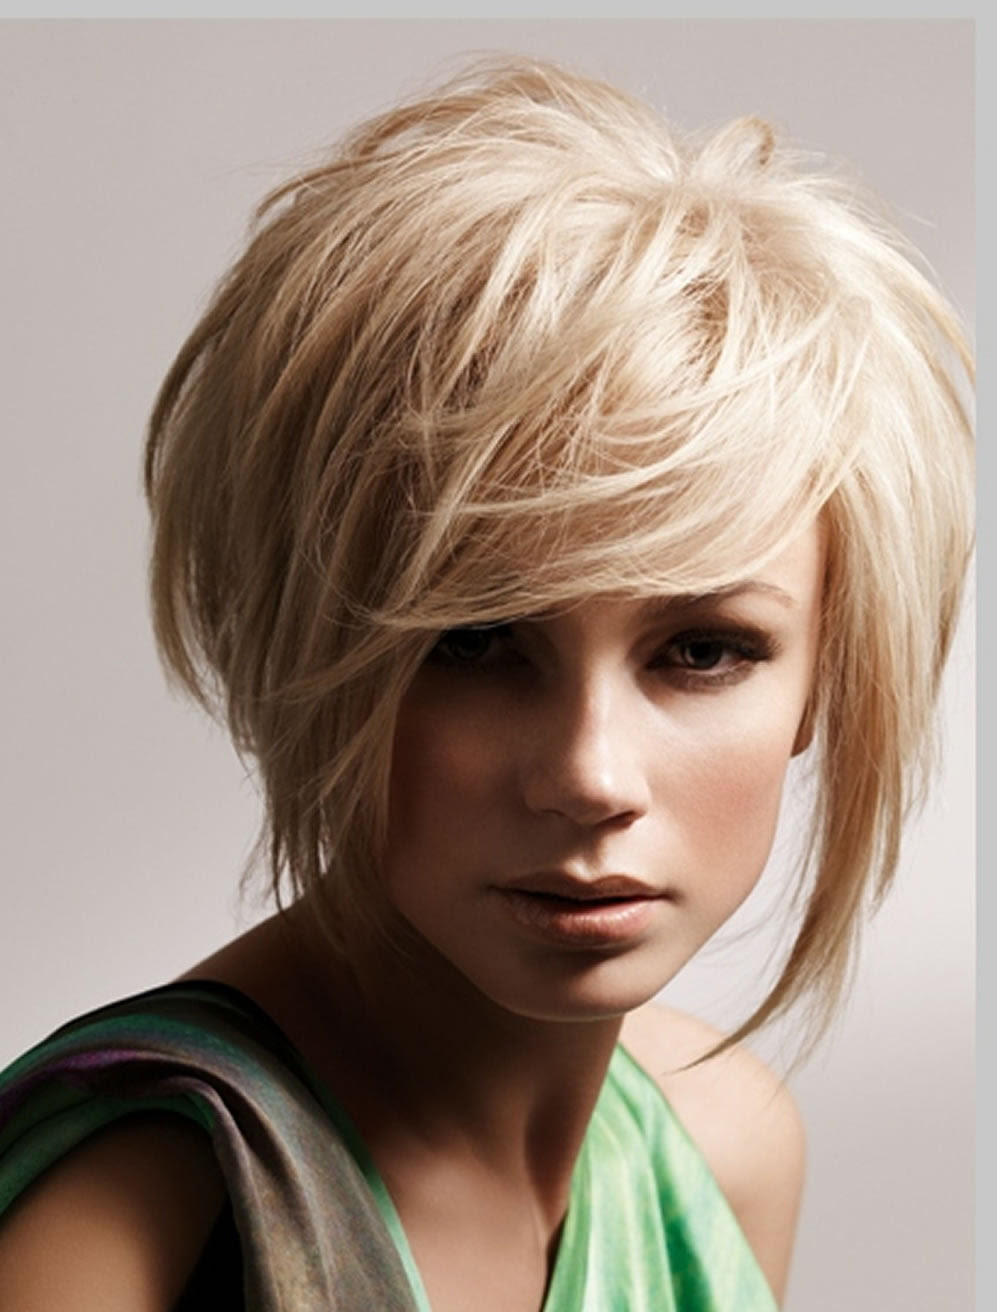 20 Easy BOB Hairstyles for SHORT Hair Spring Summer 20182019 Page 2 |  Haircuts